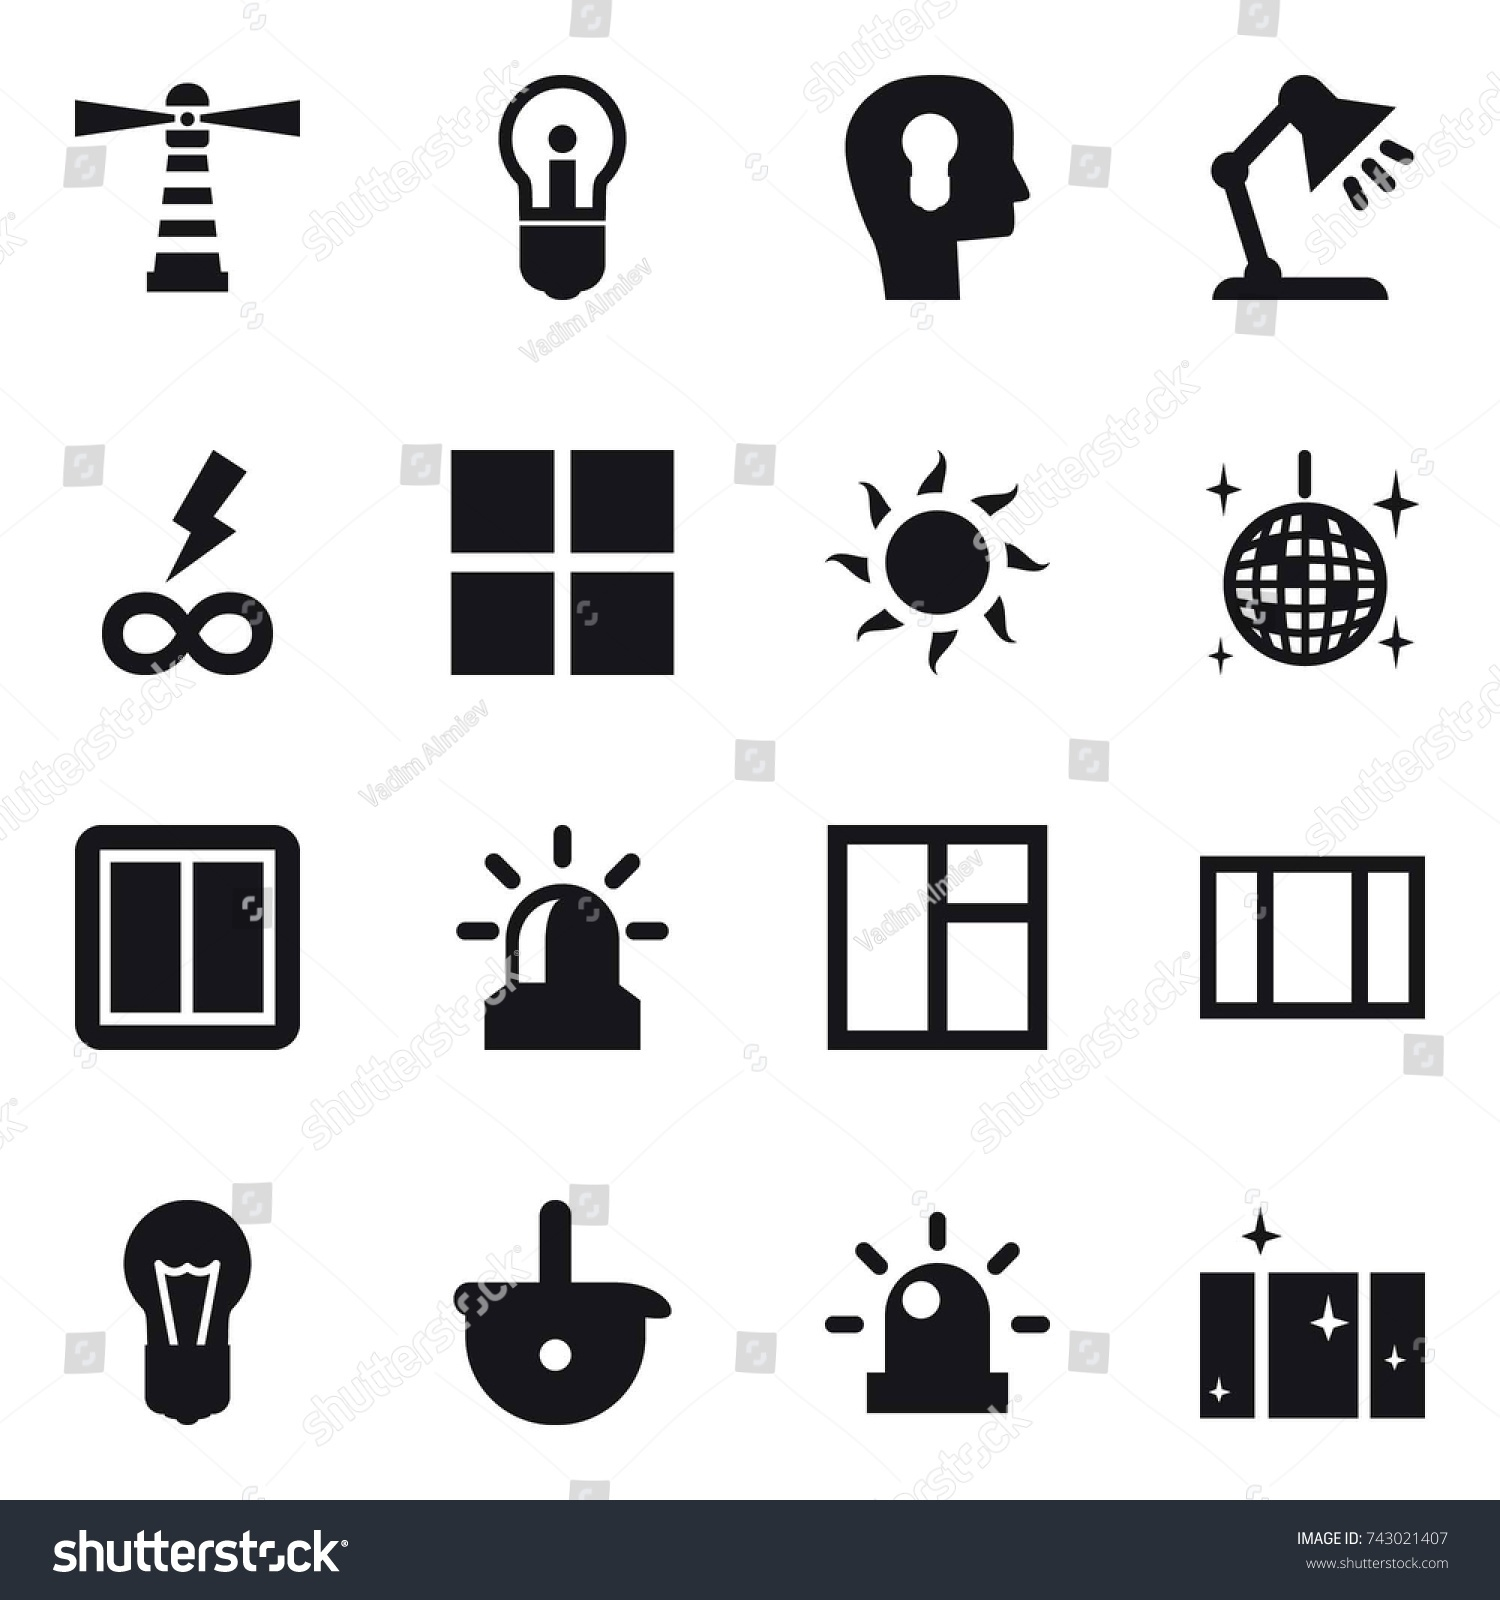 16 Vector Icon Set Lighthouse Bulb Stock Vector 743021407 - Shutterstock for Power Window Symbol  111ane